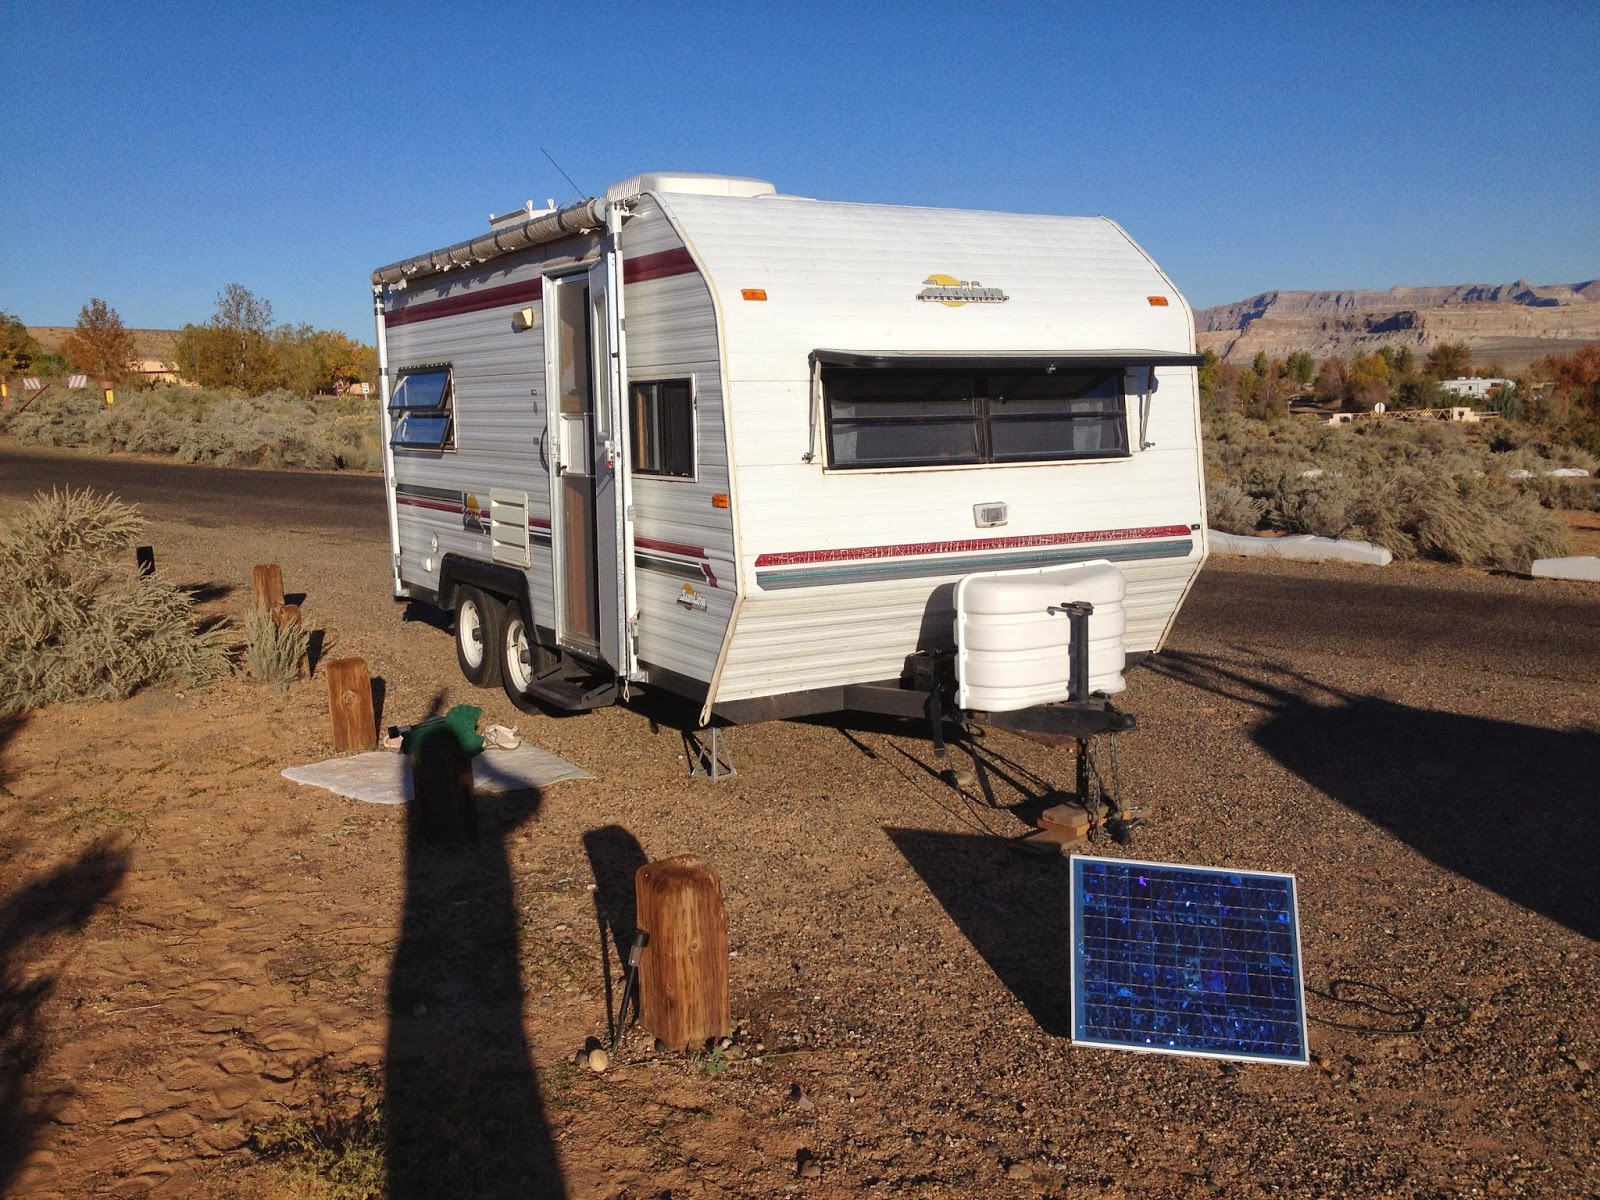 Best Small Travel Trailer For Boondocking